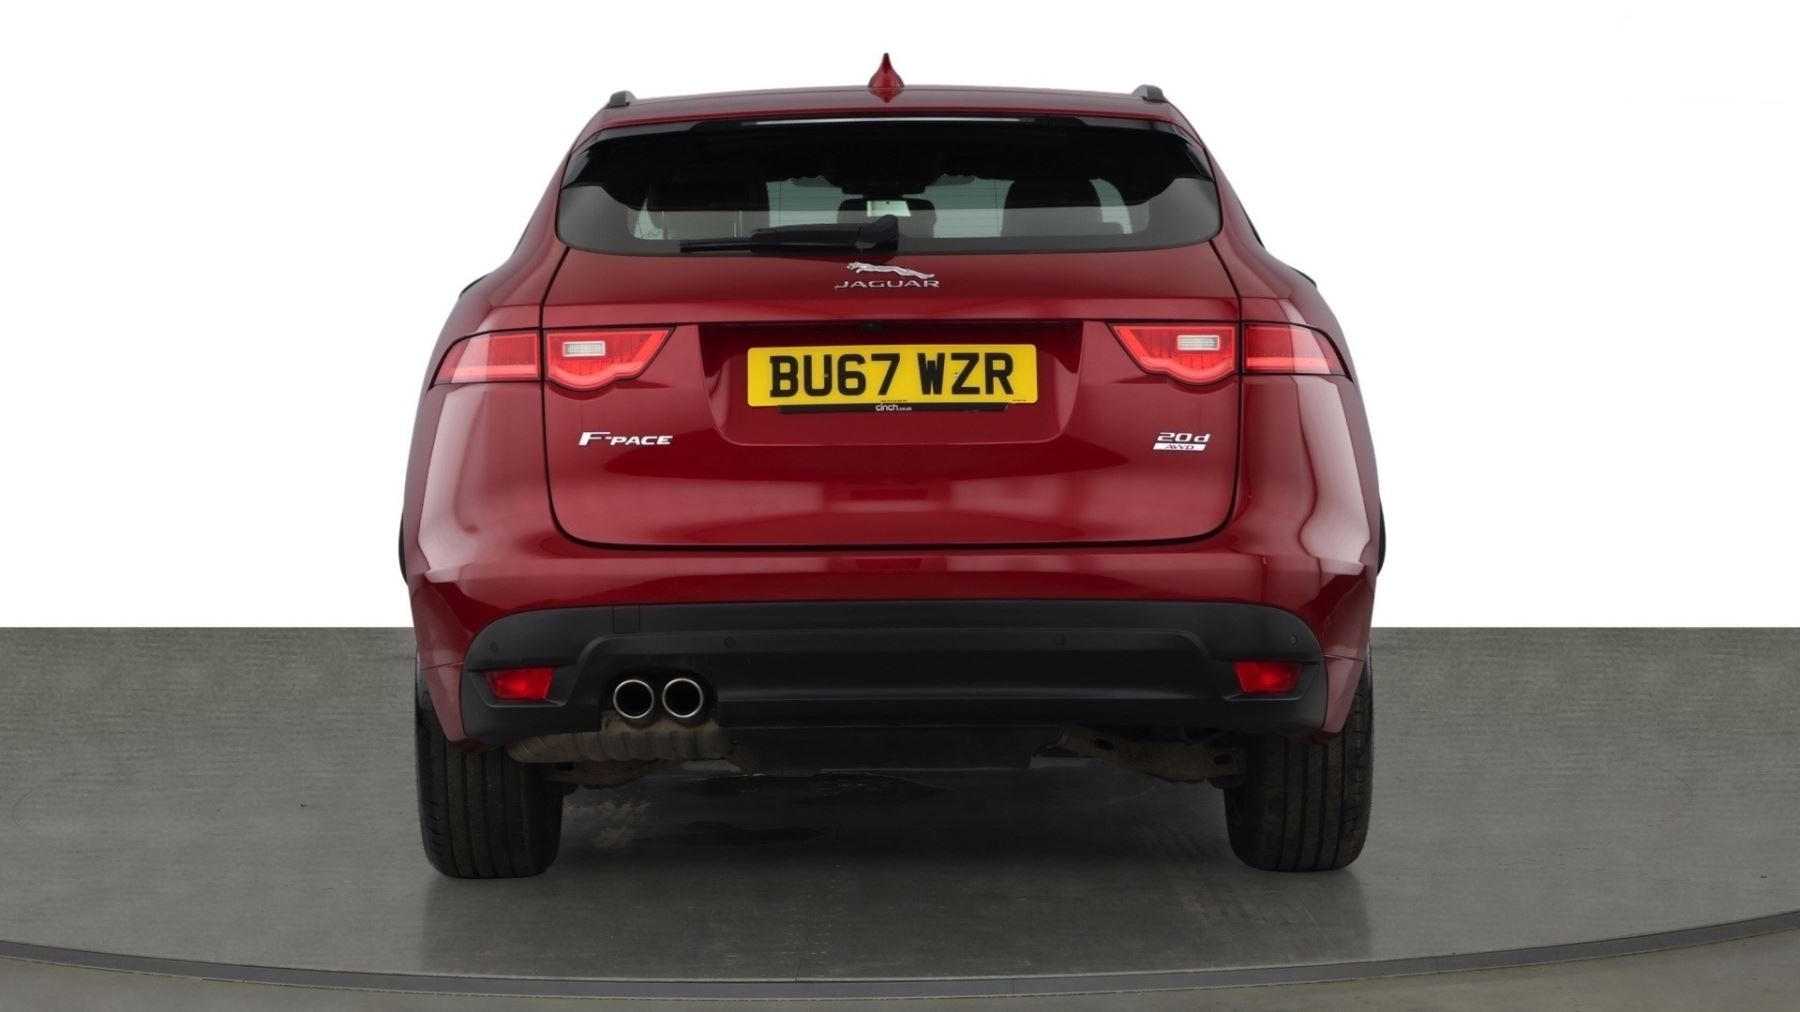 Jaguar F-PACE 2.0d R-Sport AWD - Sliding Panoramic Roof - Rear View Camera image 5